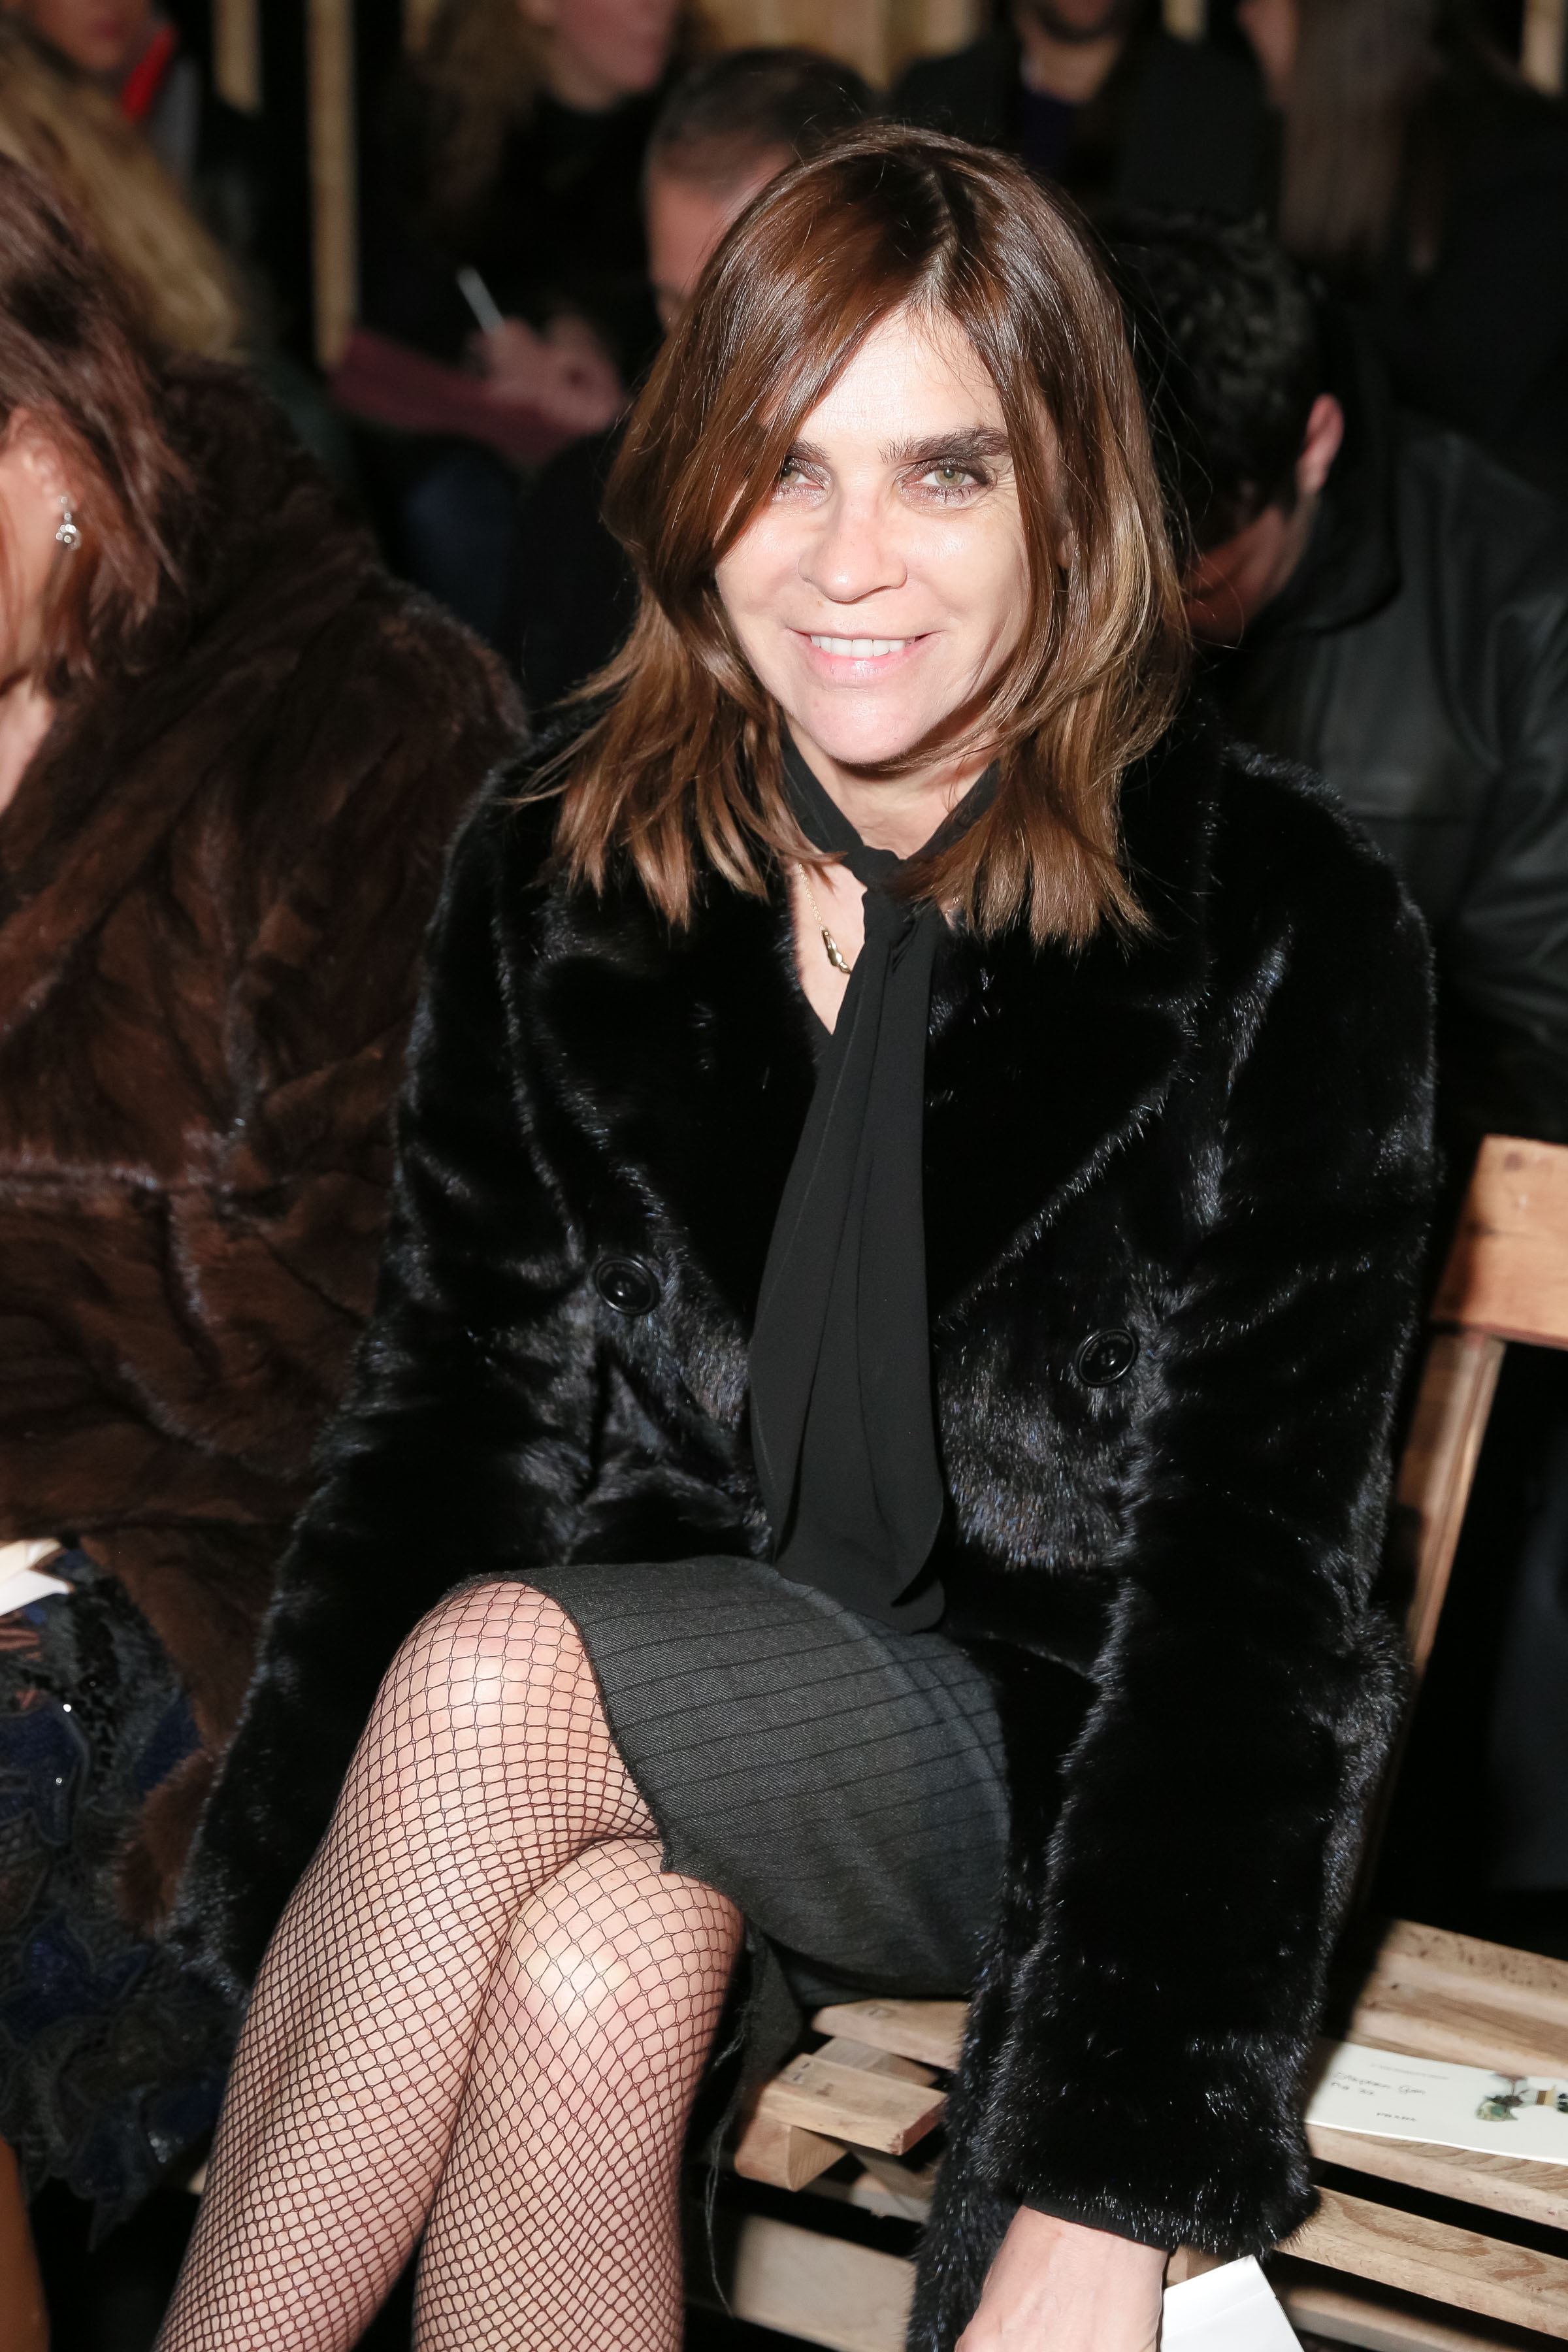 Details On Her 3 Shades Of: Details On Carine Roitfeld's Book Signing For CR Girls